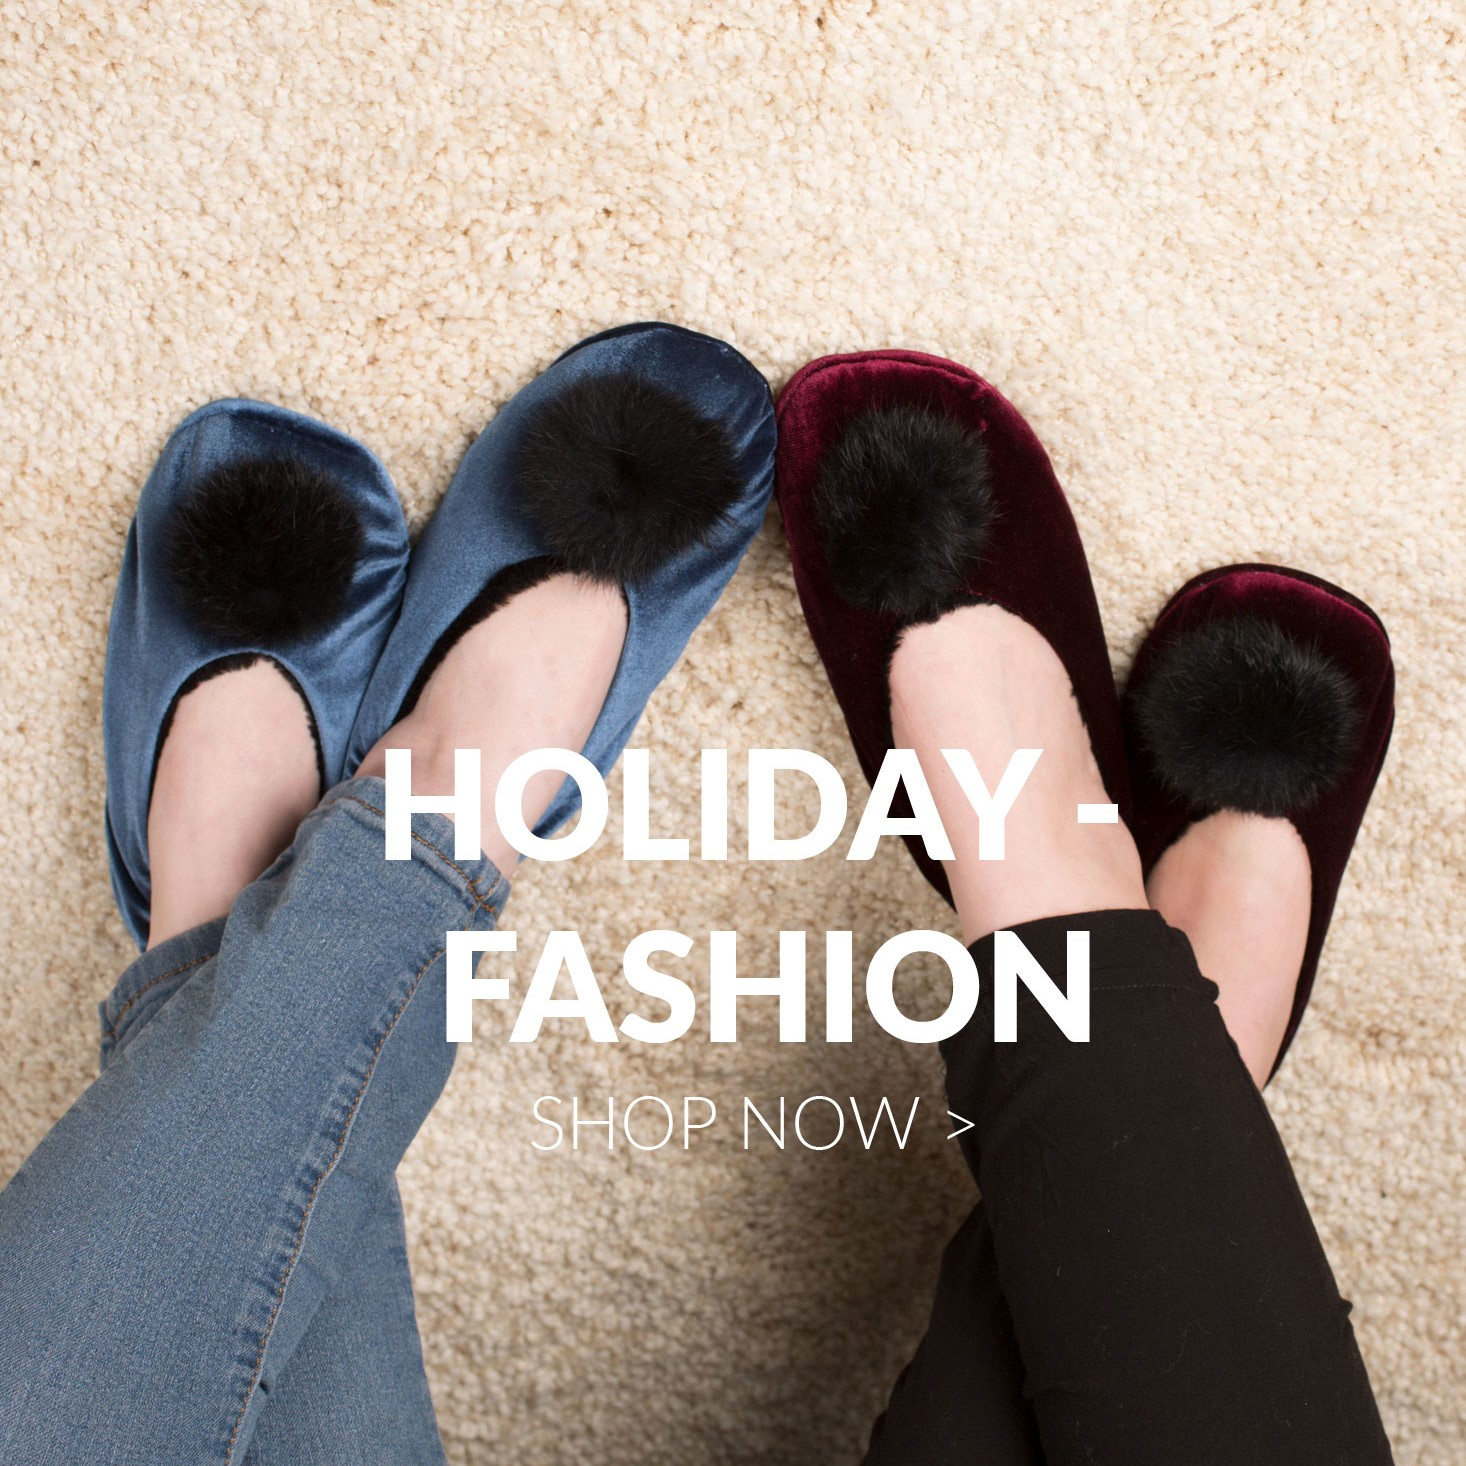 Holiday - Fashion